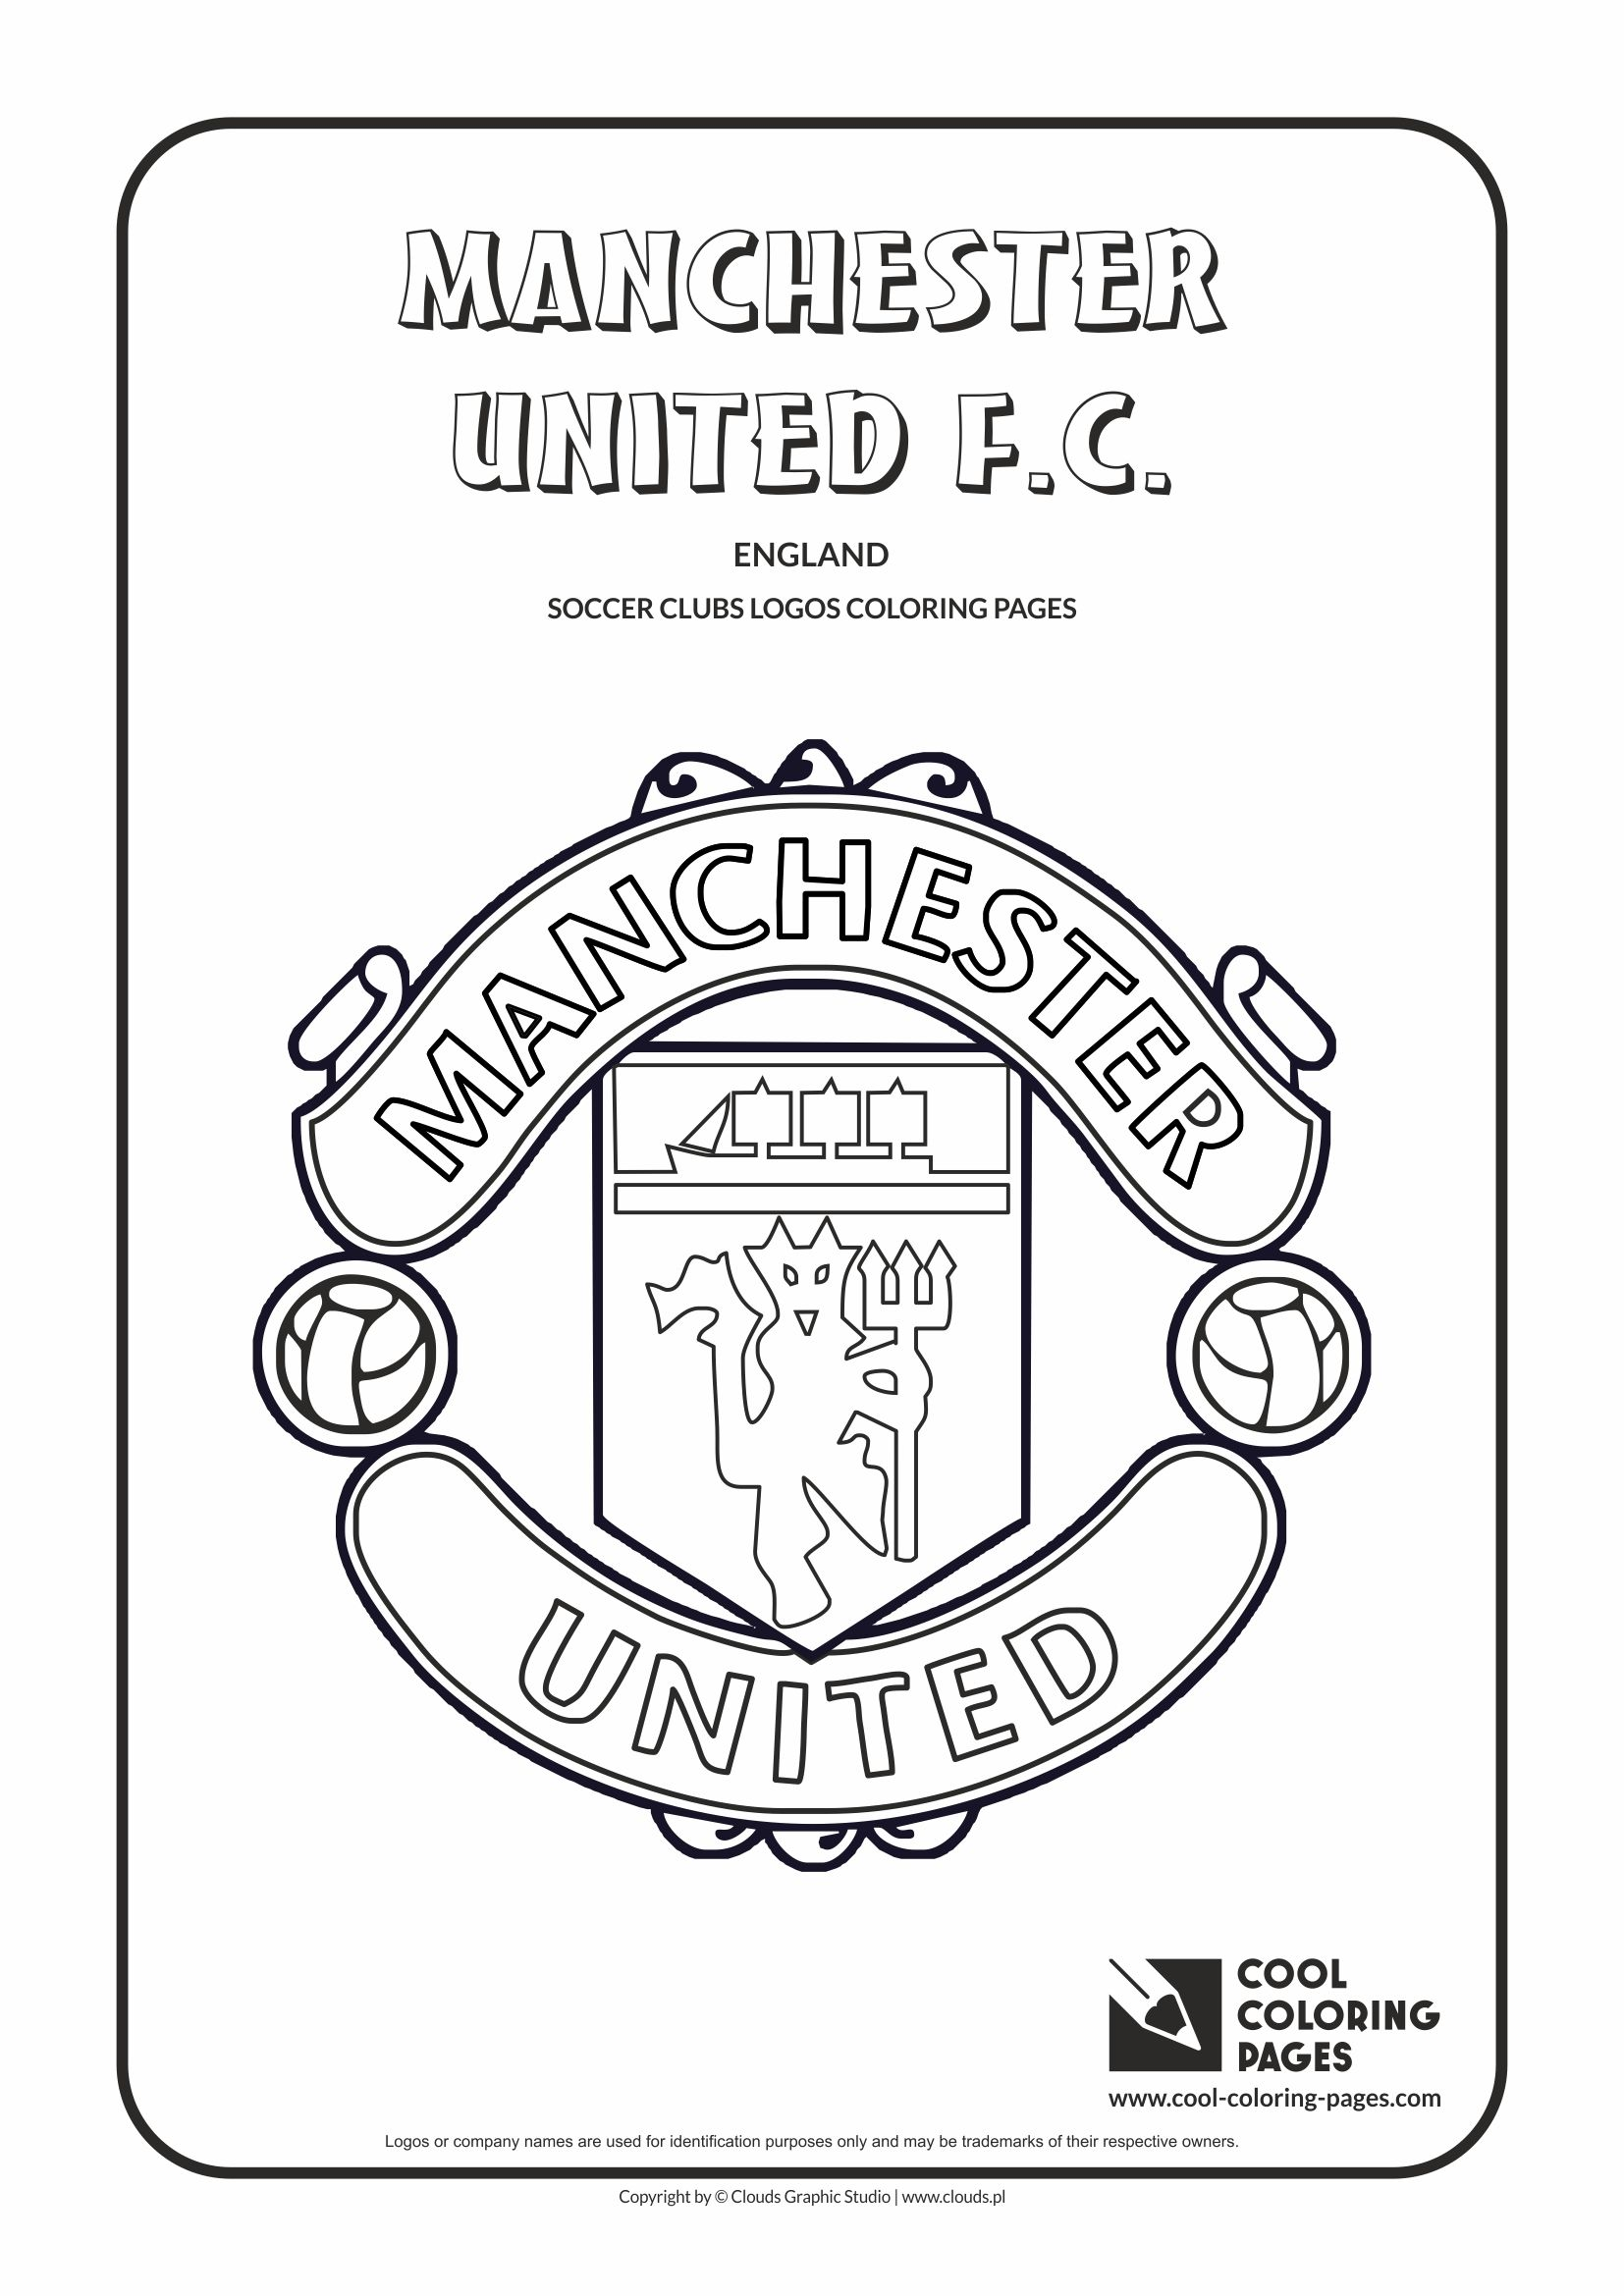 Cool Coloring Pages Manchester United F.C. logo coloring